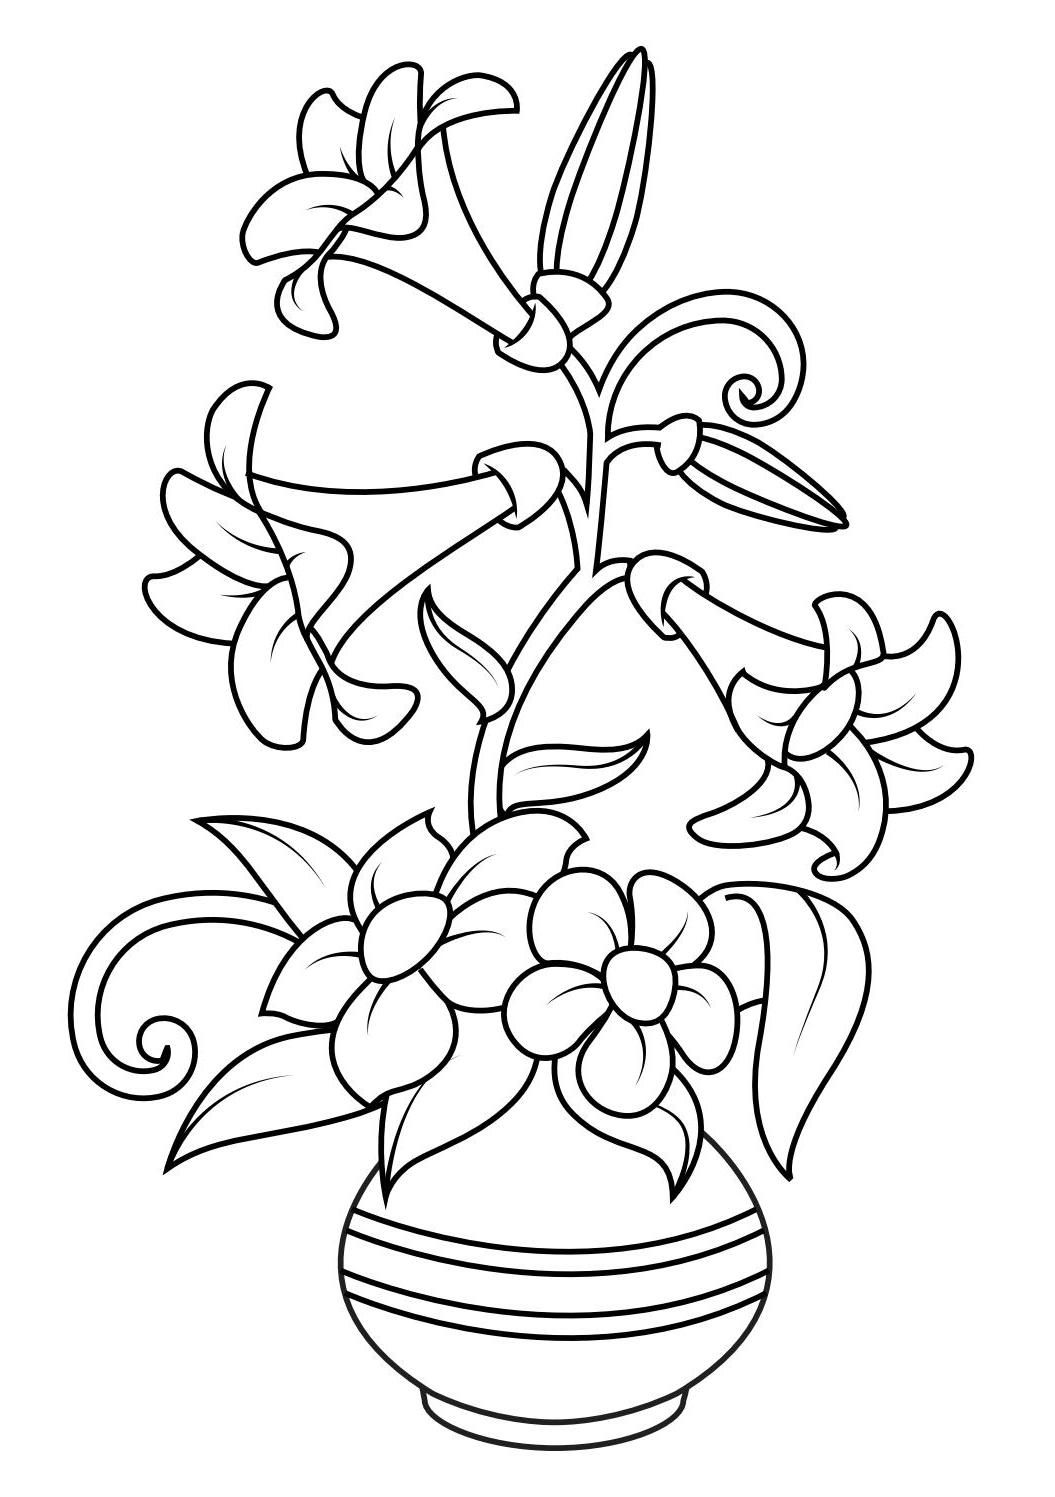 Flower Coloring Pages - Printable Coloring Book For Kids | Coloring ...